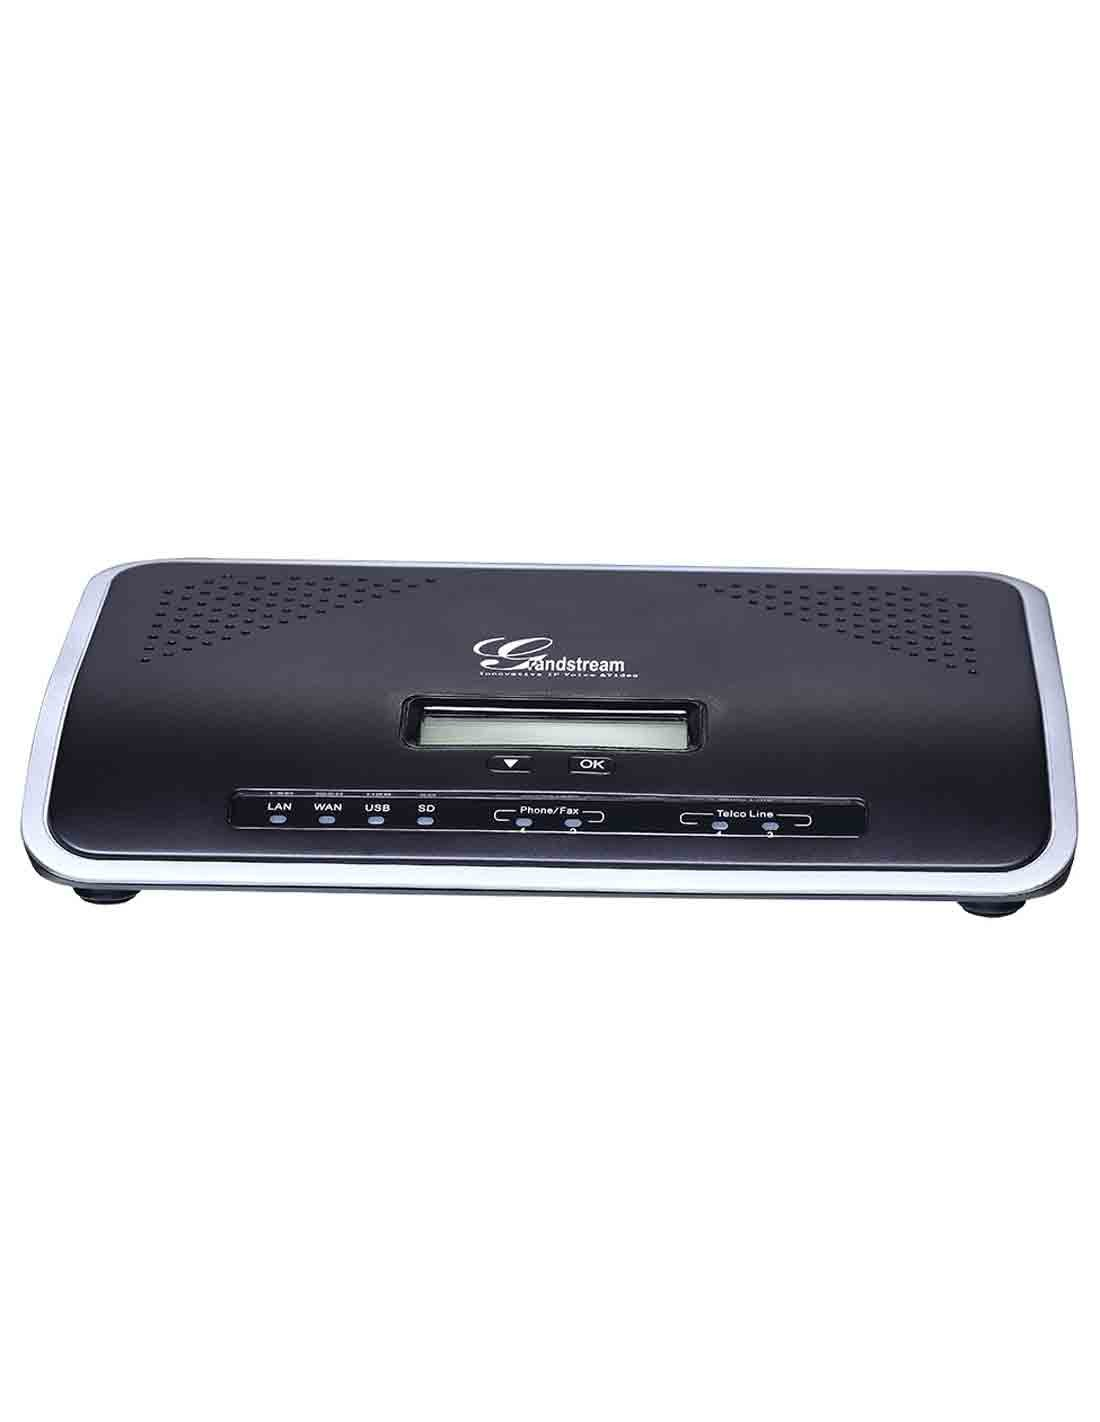 Grandstream UCM6202 IP-PBX at a cheap price and free delivery in Dubai Online Store